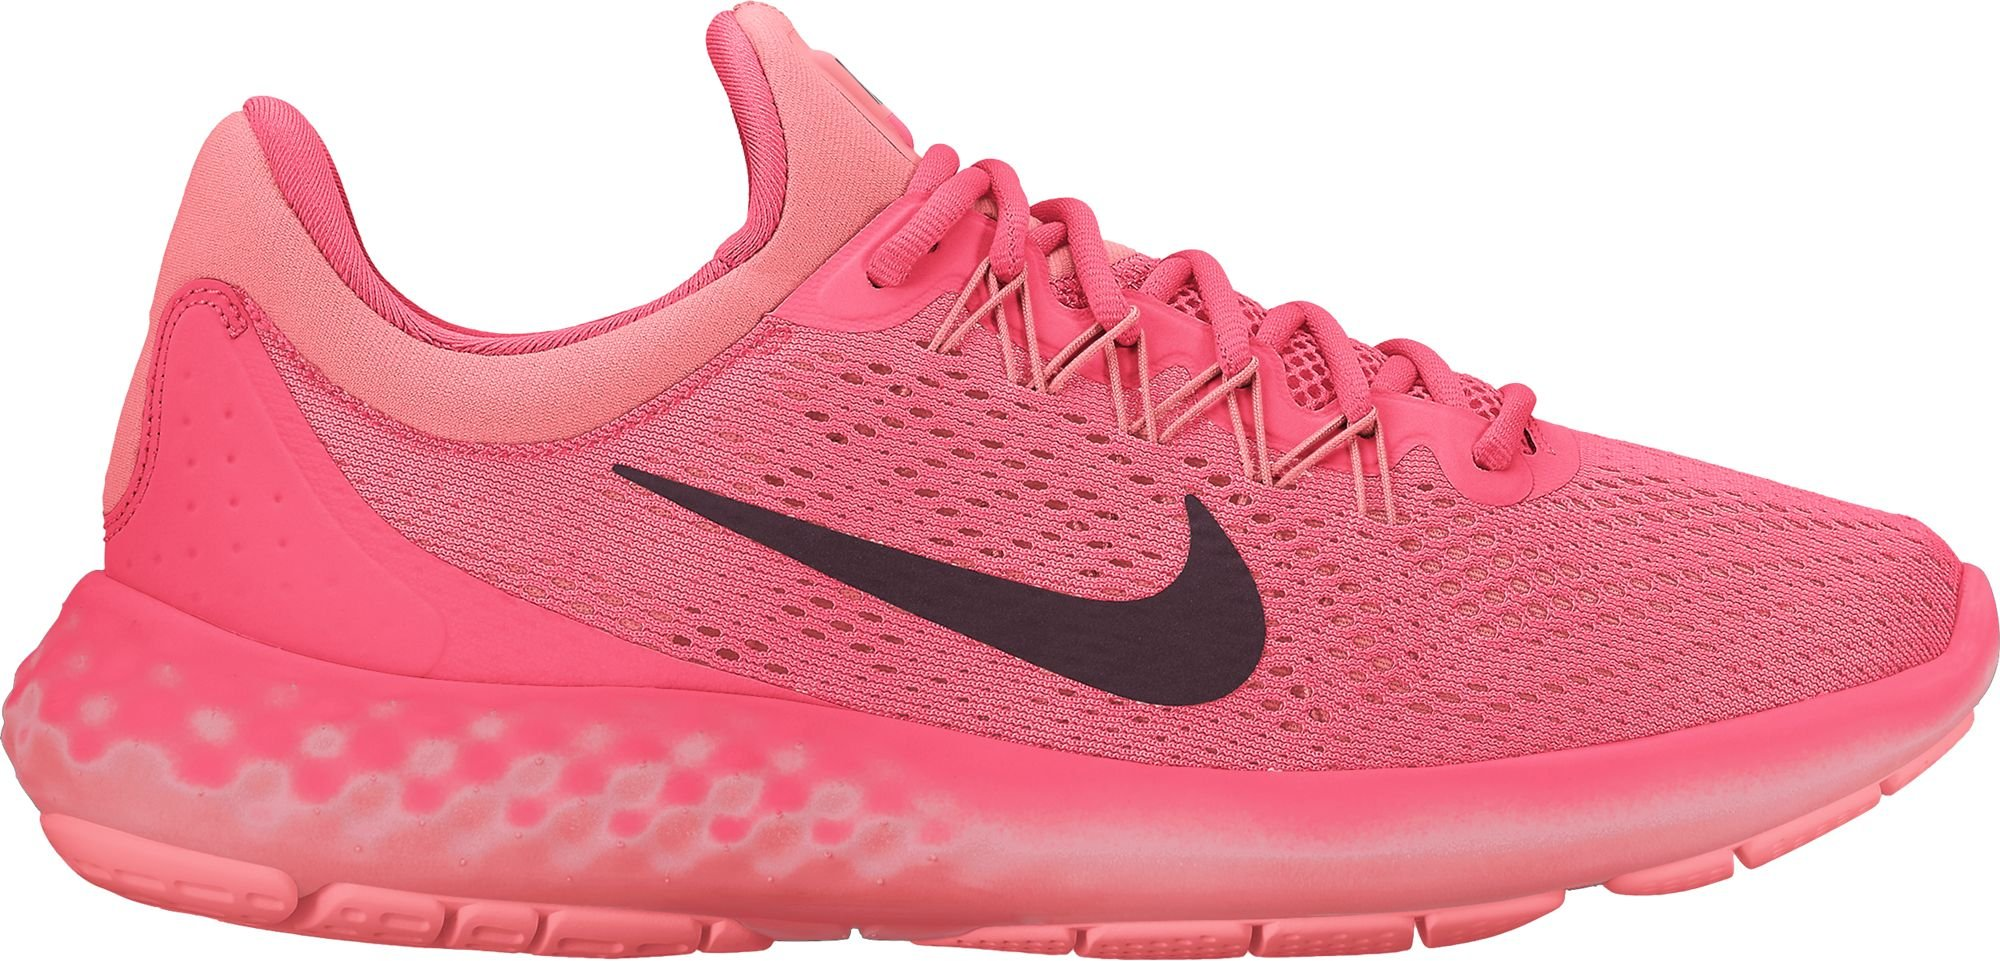 new product 55424 37a04 Galleon - NIKE Women's Lunar Skyelux Hot Punch/Night Maroon Running Shoe  (6.5)